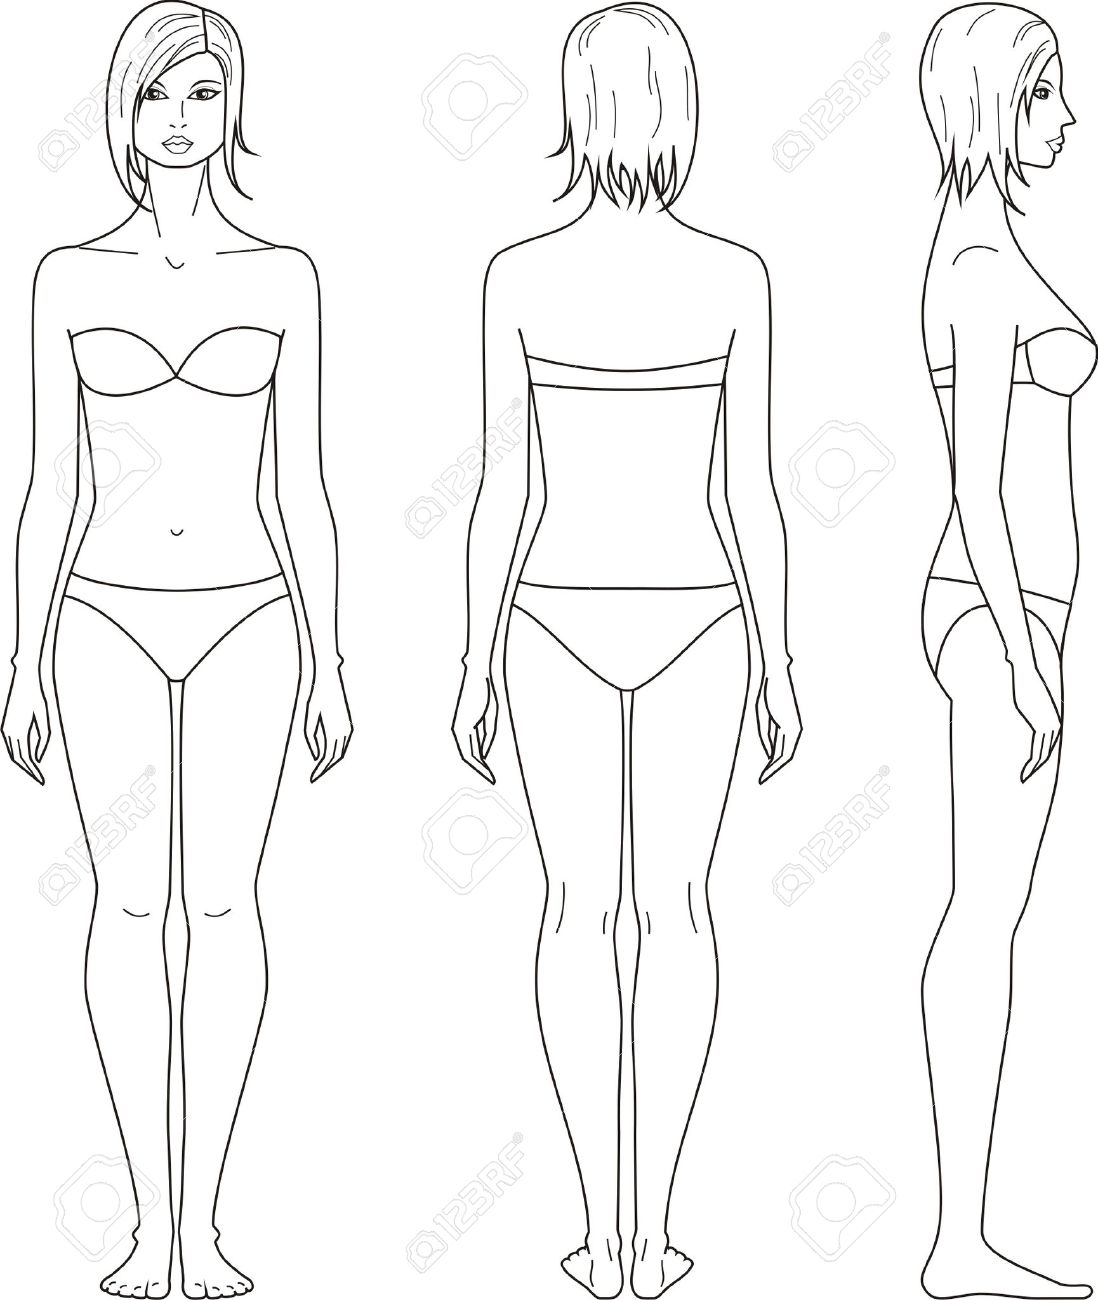 1098x1300 Illustration Of Women S Figure Front, Back, Side Views Royalty